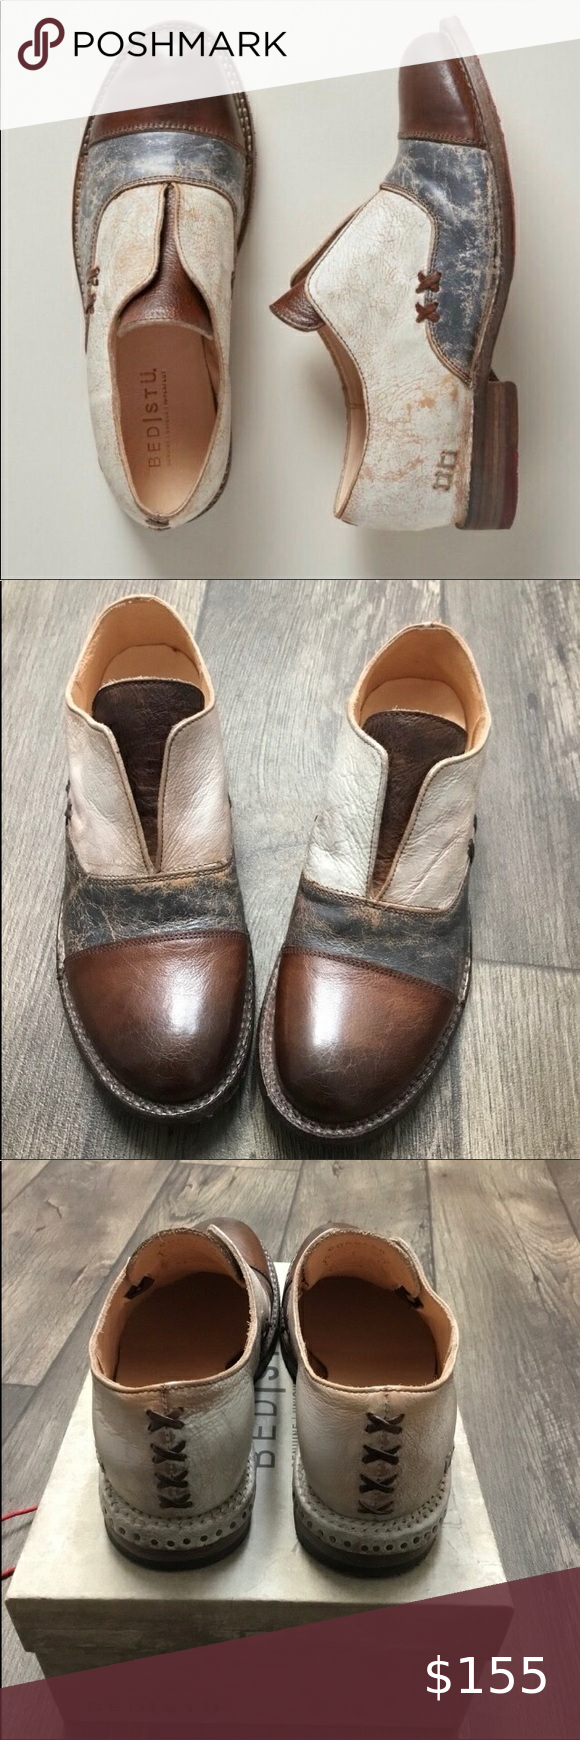 New Bed Stu Garden Leather Shoes Nwt In